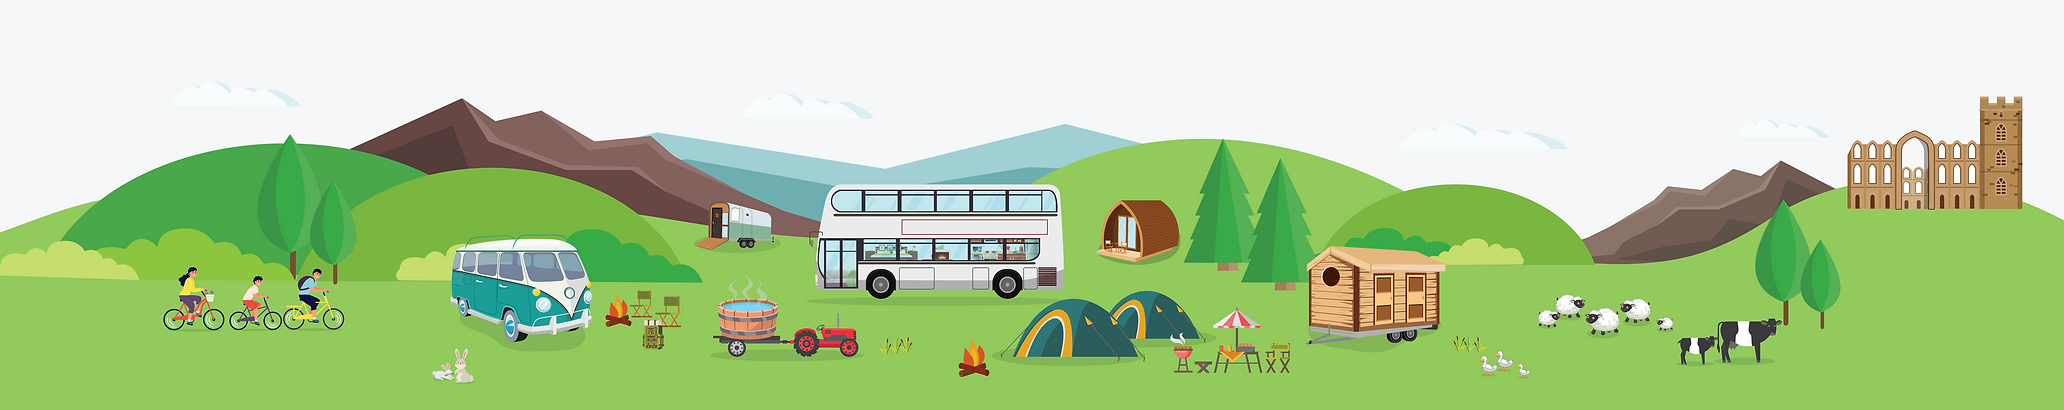 Ivy Bank Campsite Illustrations - Footer